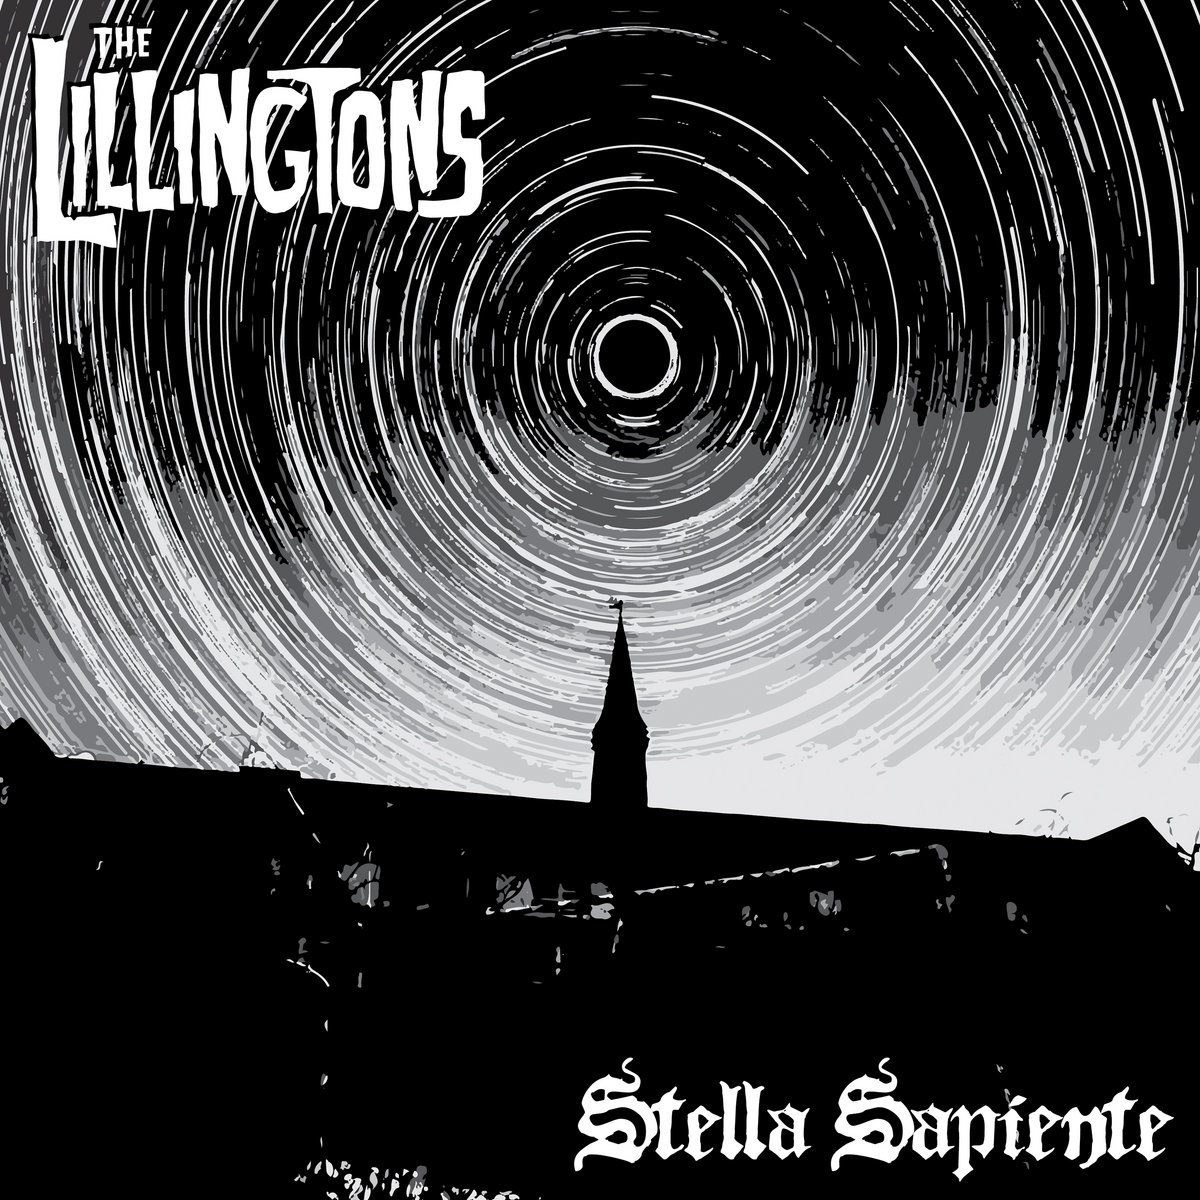 Music fat wreck chords stella sapiente the lillingtons hexwebz Image collections